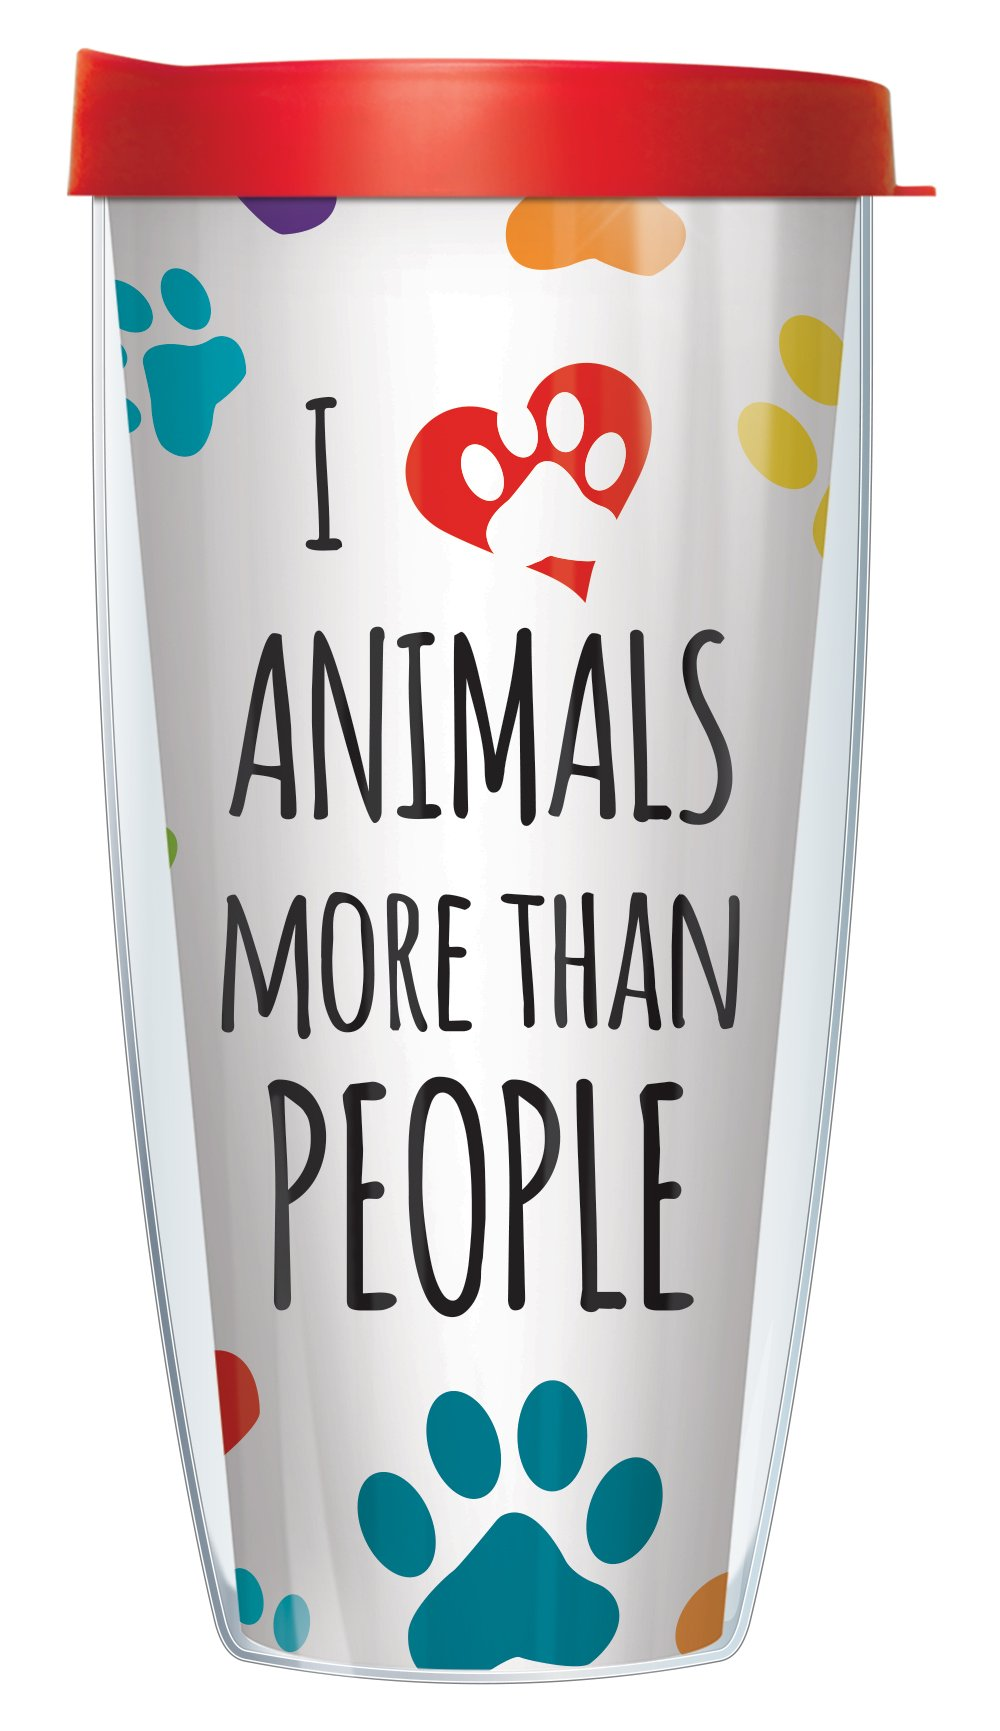 I Love Animals Tumbler Cup 22oz Mug with Lid by Signature Tumblers (Image #1)